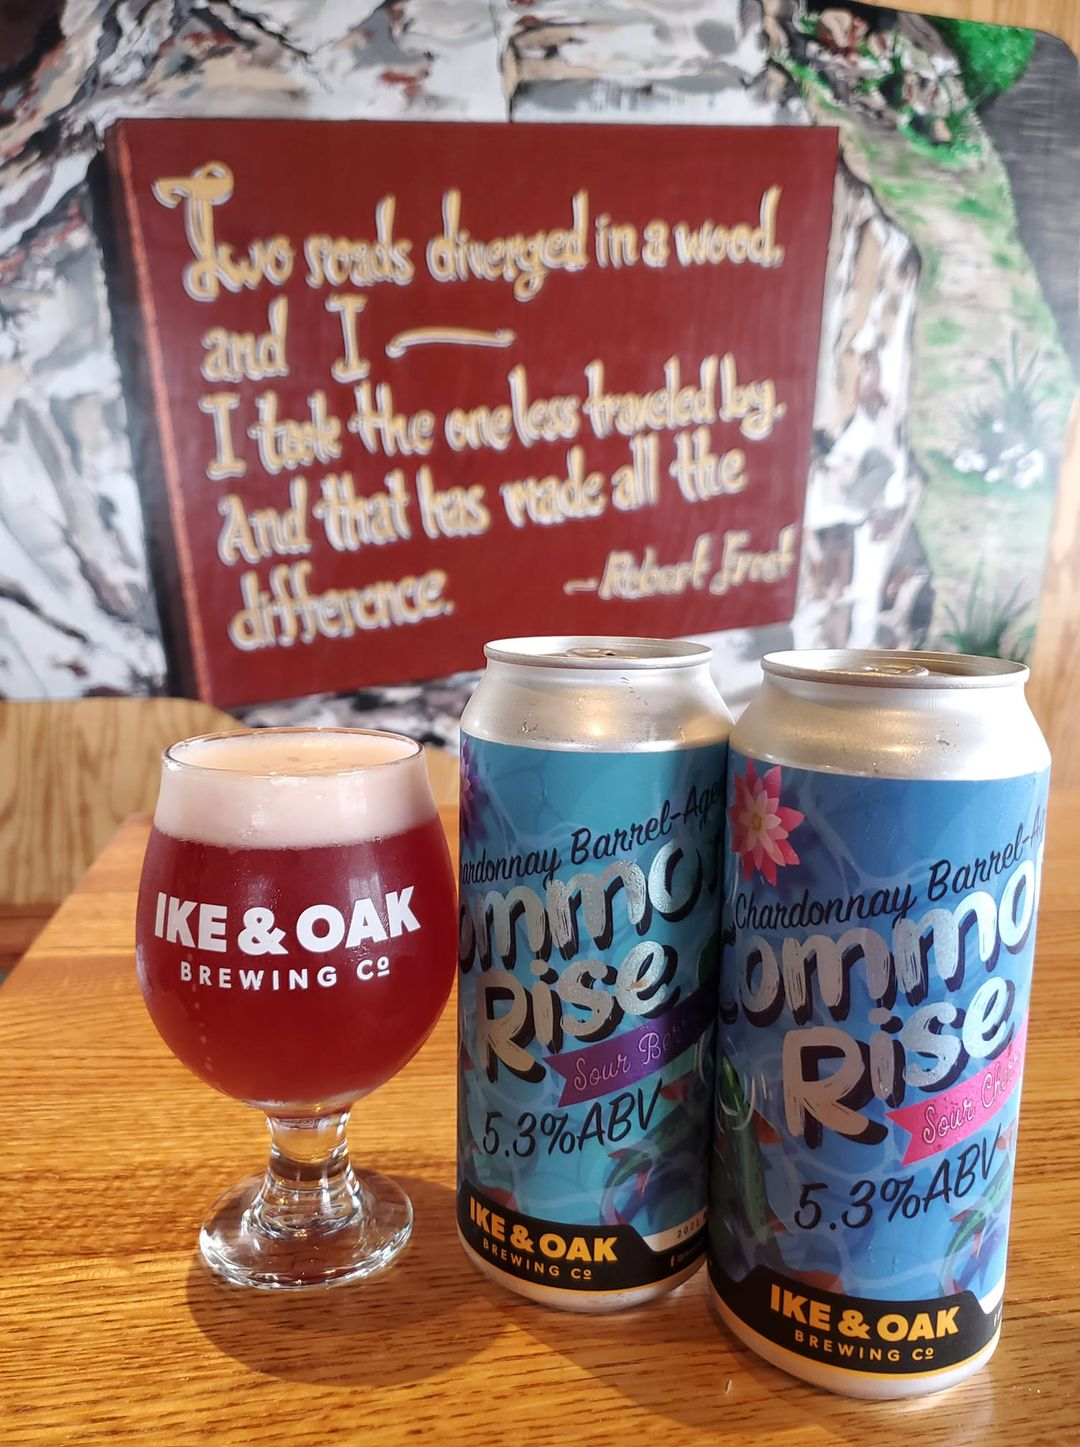 Glass and two cans of Ike & Oak Brewing's Common Rise